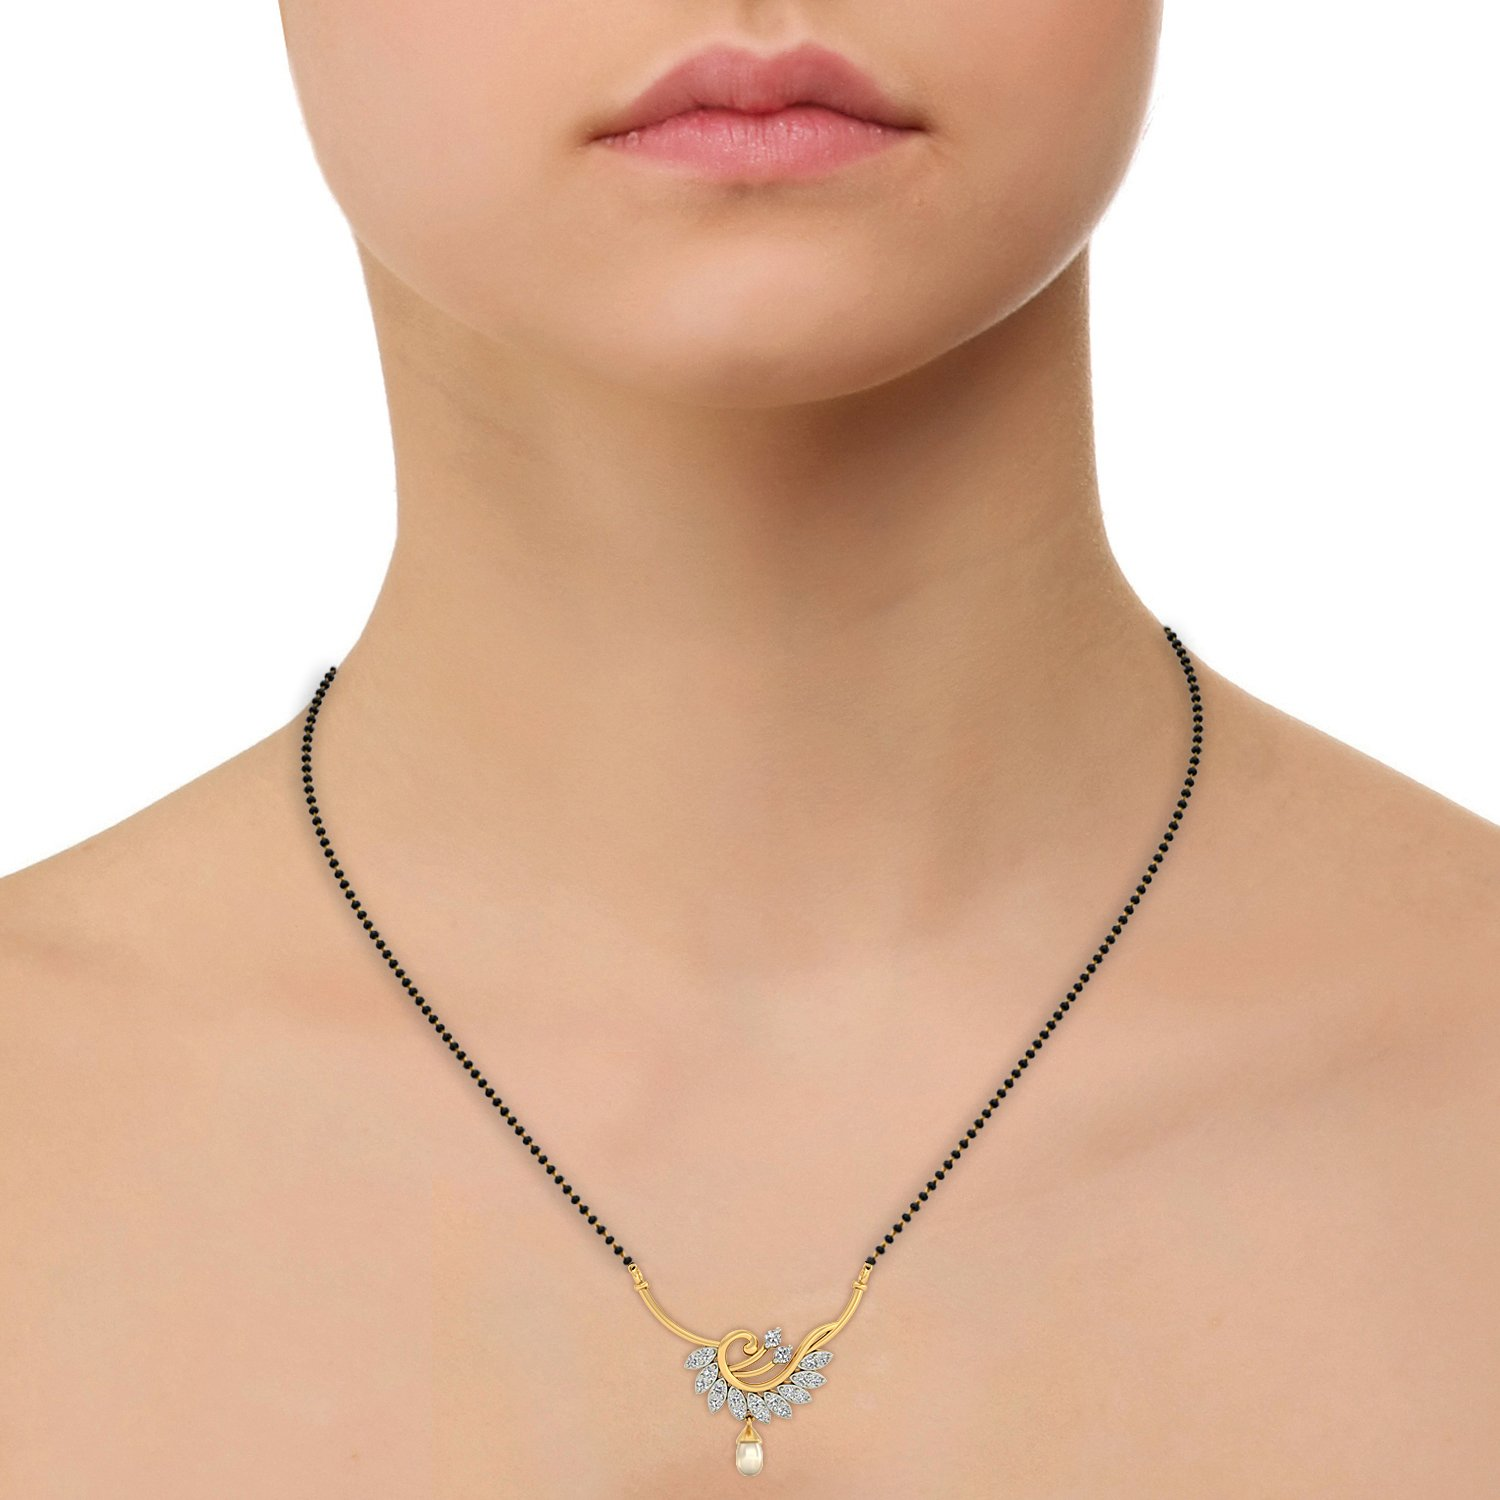 jewelry little lyst metallic in gallery boy gold necklace yellow pendant kc product diamond designs